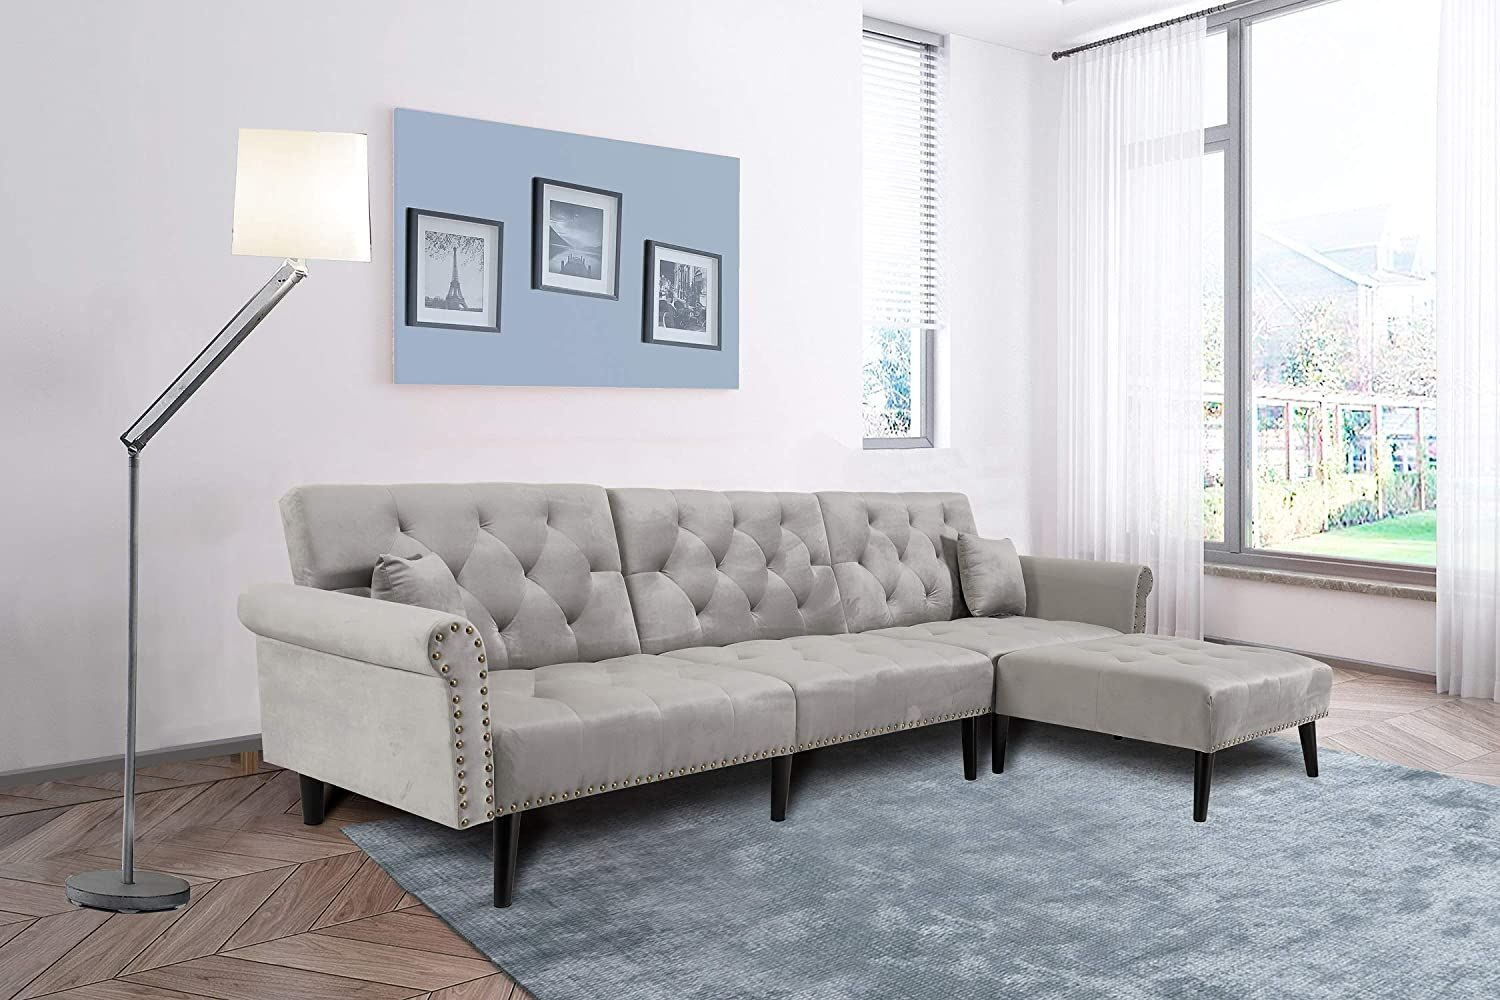 Mid Century Upholstered Convertible Sectional Sofa Futon Couch Chaise Sleeper With Adjustab In 2020 Grey Sectional Sofa Sofas For Small Spaces Small Space Sleeper Sofa